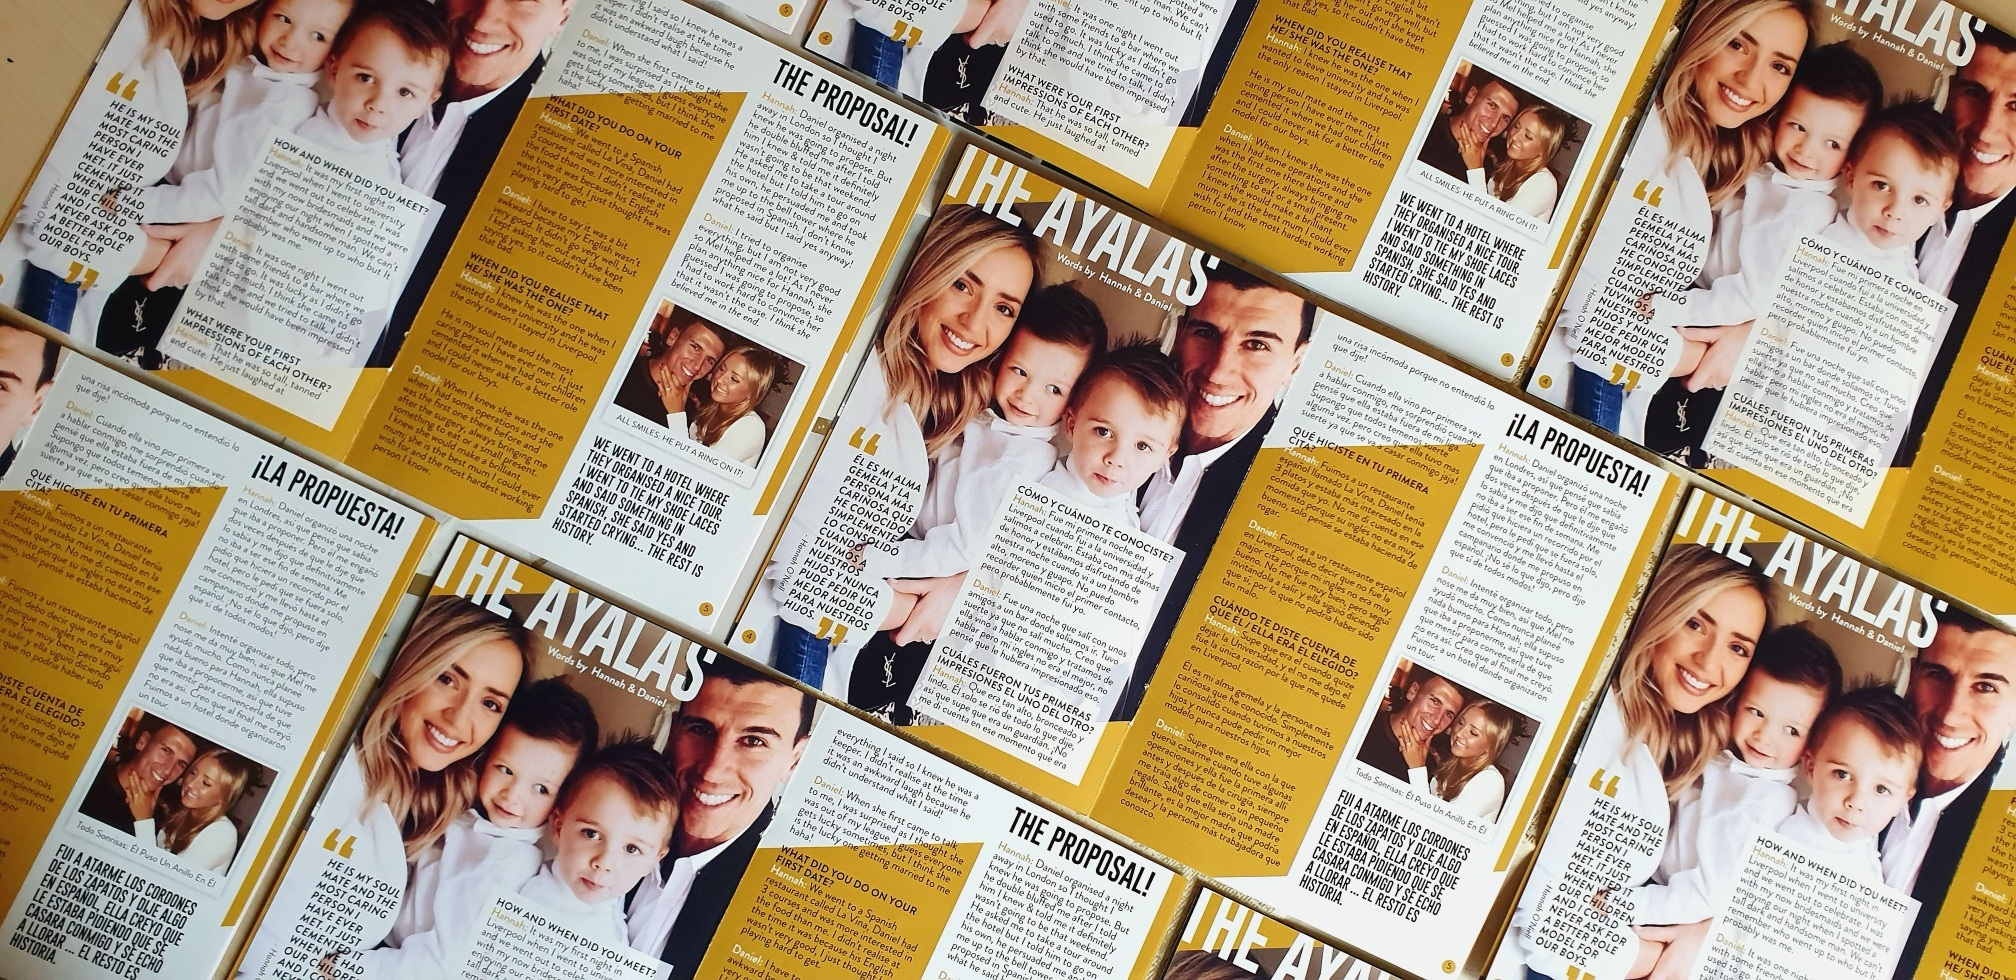 The Ayala's: English and Spanish versions of their feature story in Dapper & Bride